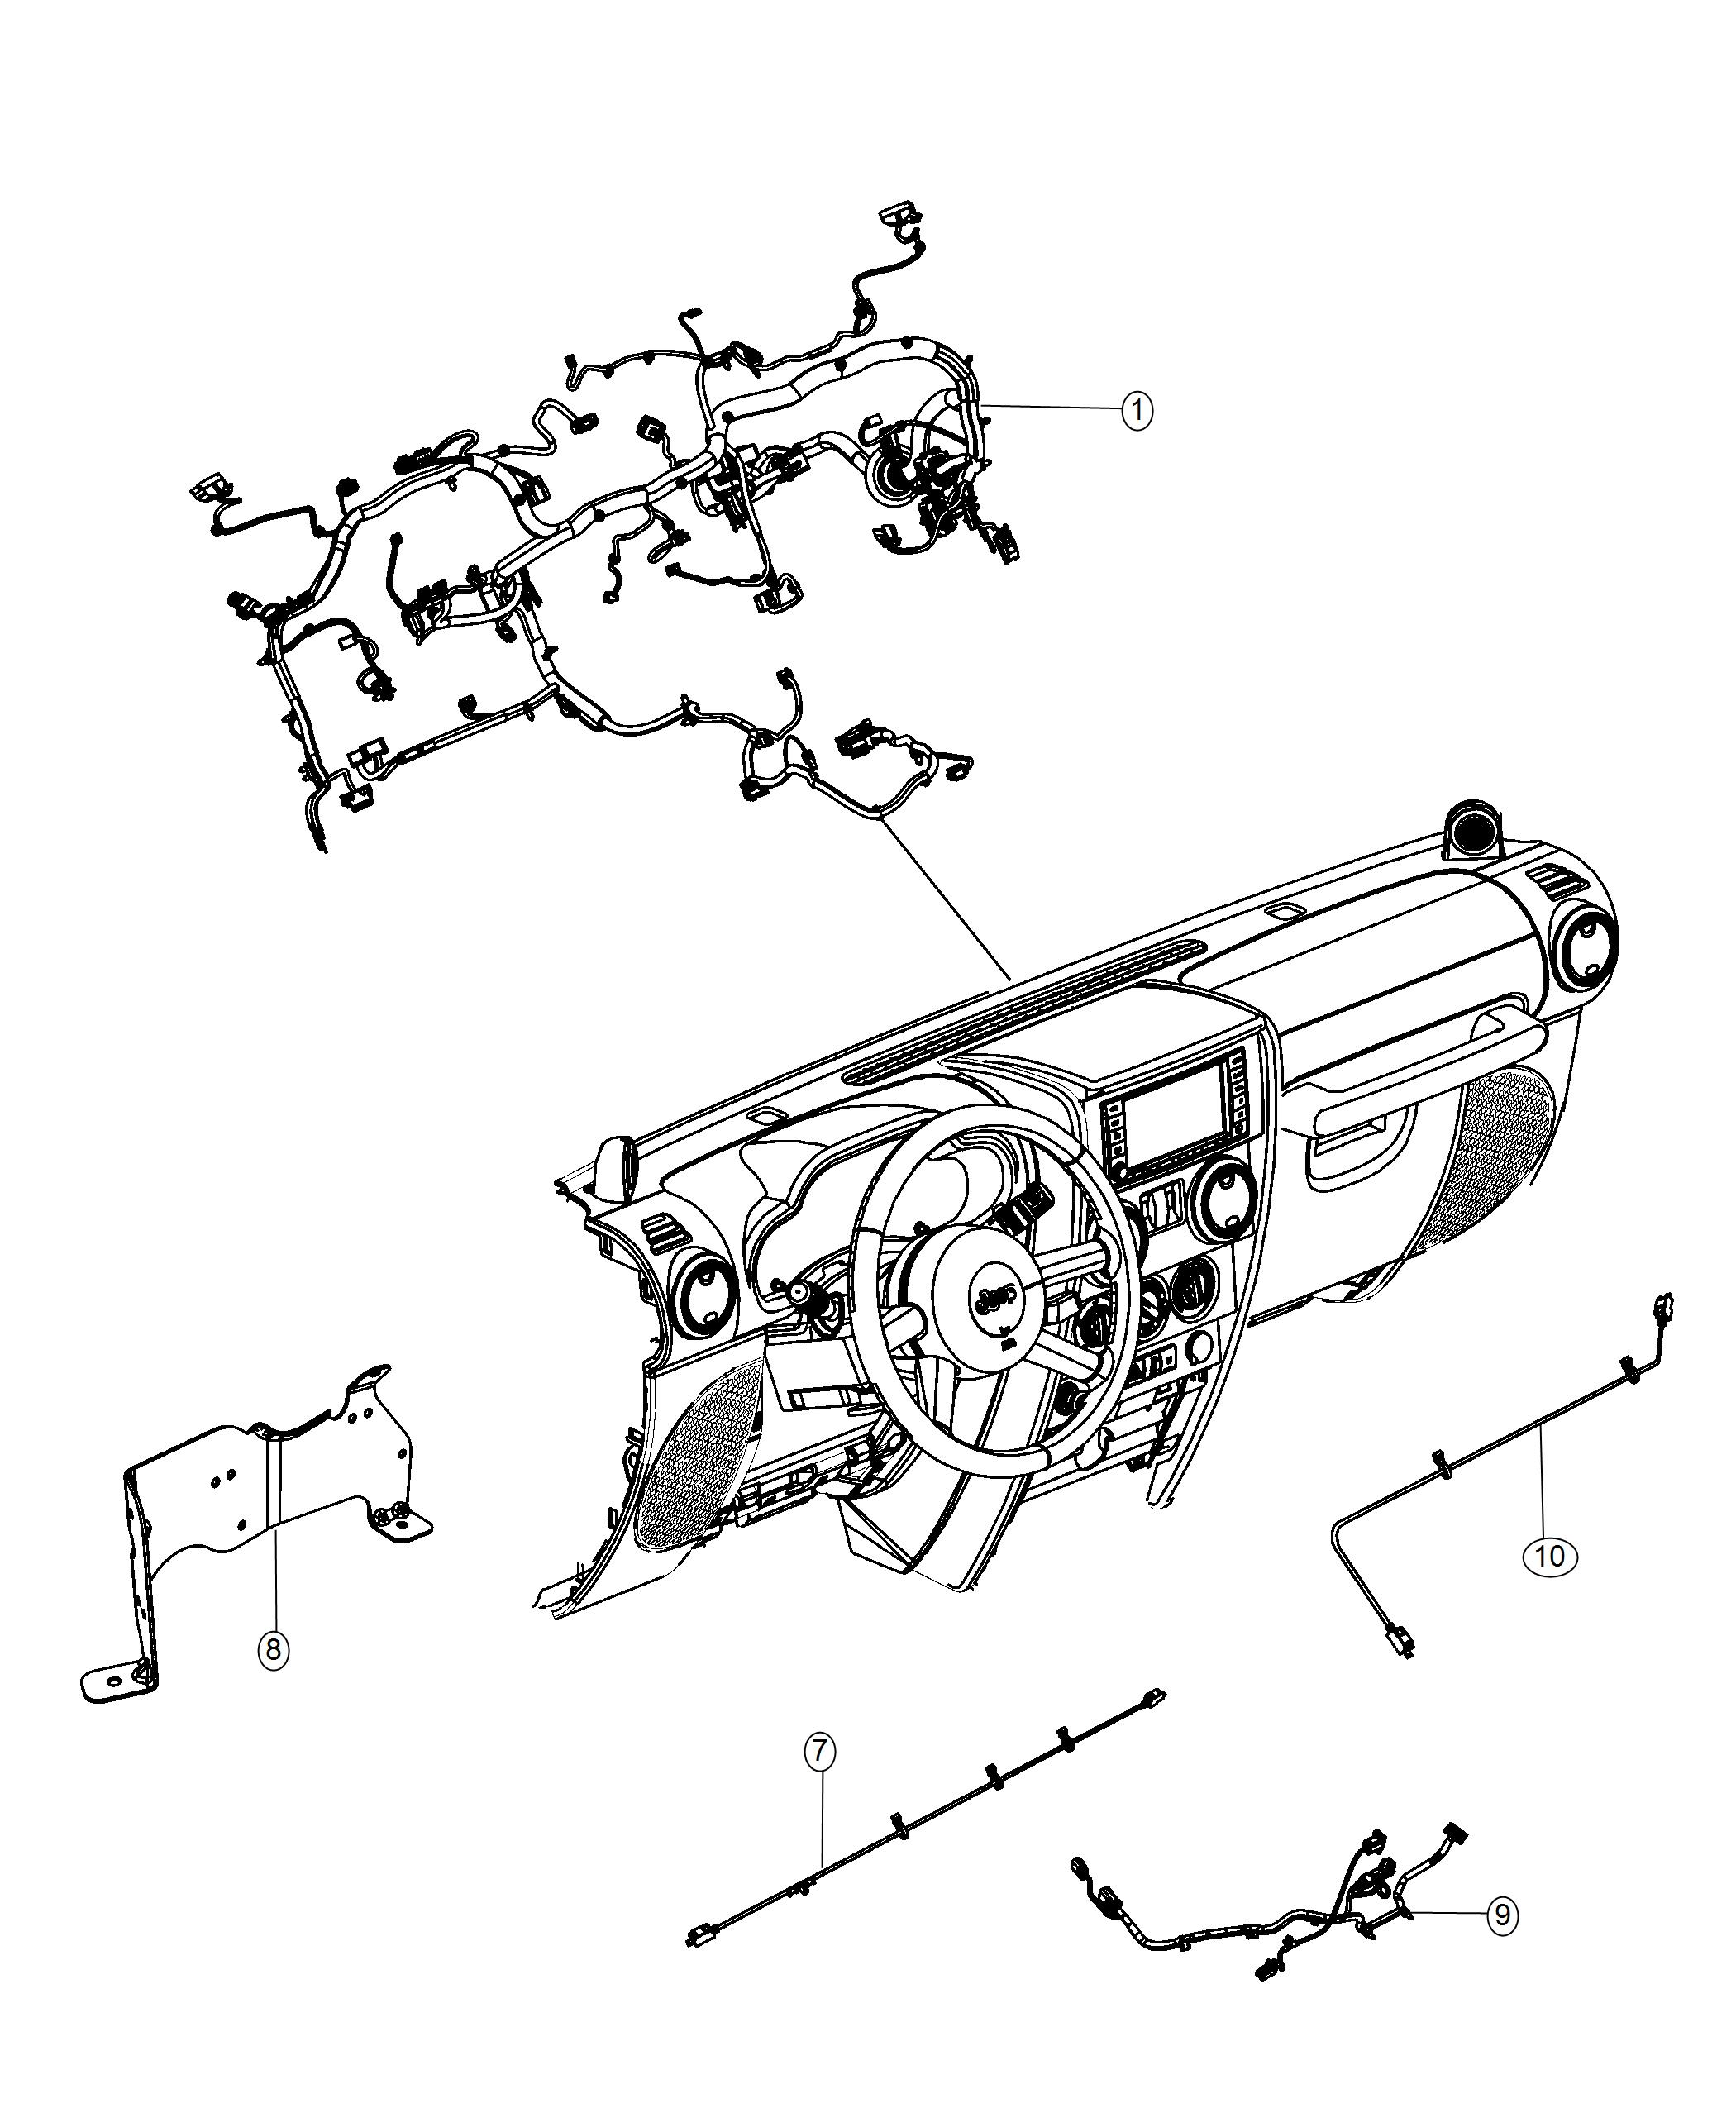 tags: #4#258 jeep engine diagram#jeep cj brake line diagram#1979 jeep cj7  heater hose diagram#jeep cj7 heater wiring diagram#1983 jeep cj7 wiring